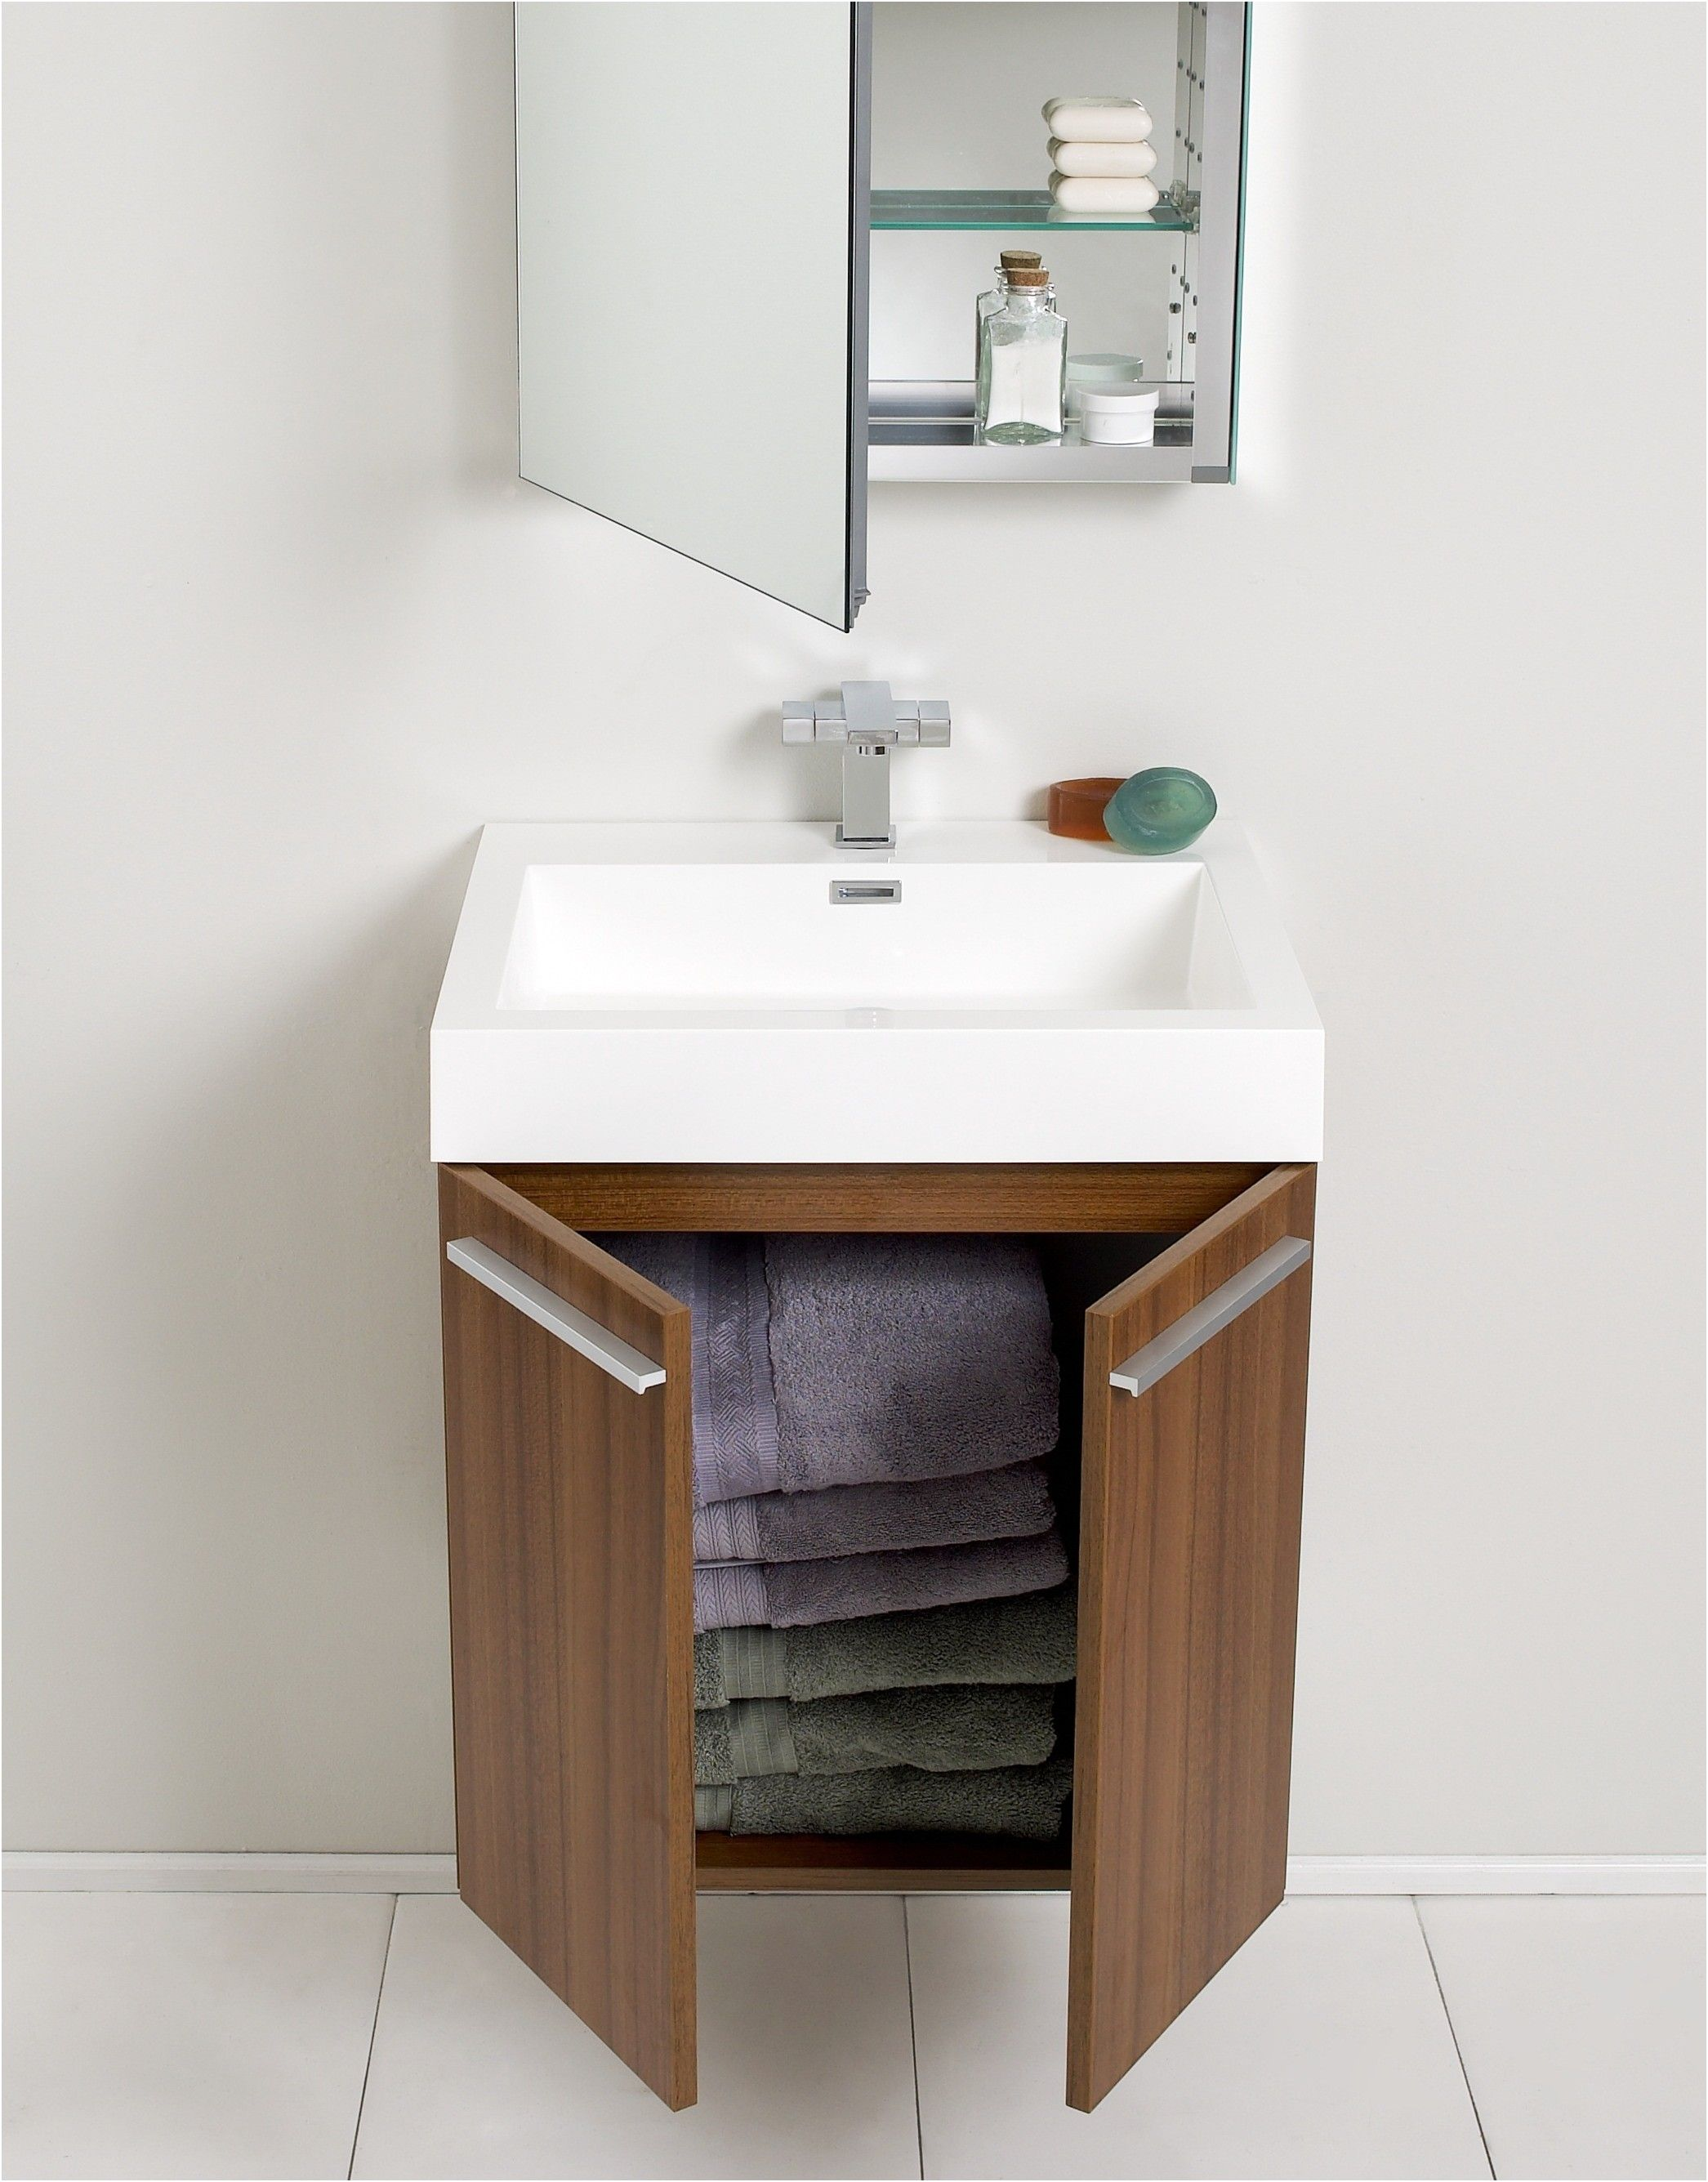 fine bathroom sink cabinets solution inside design ideas from Small